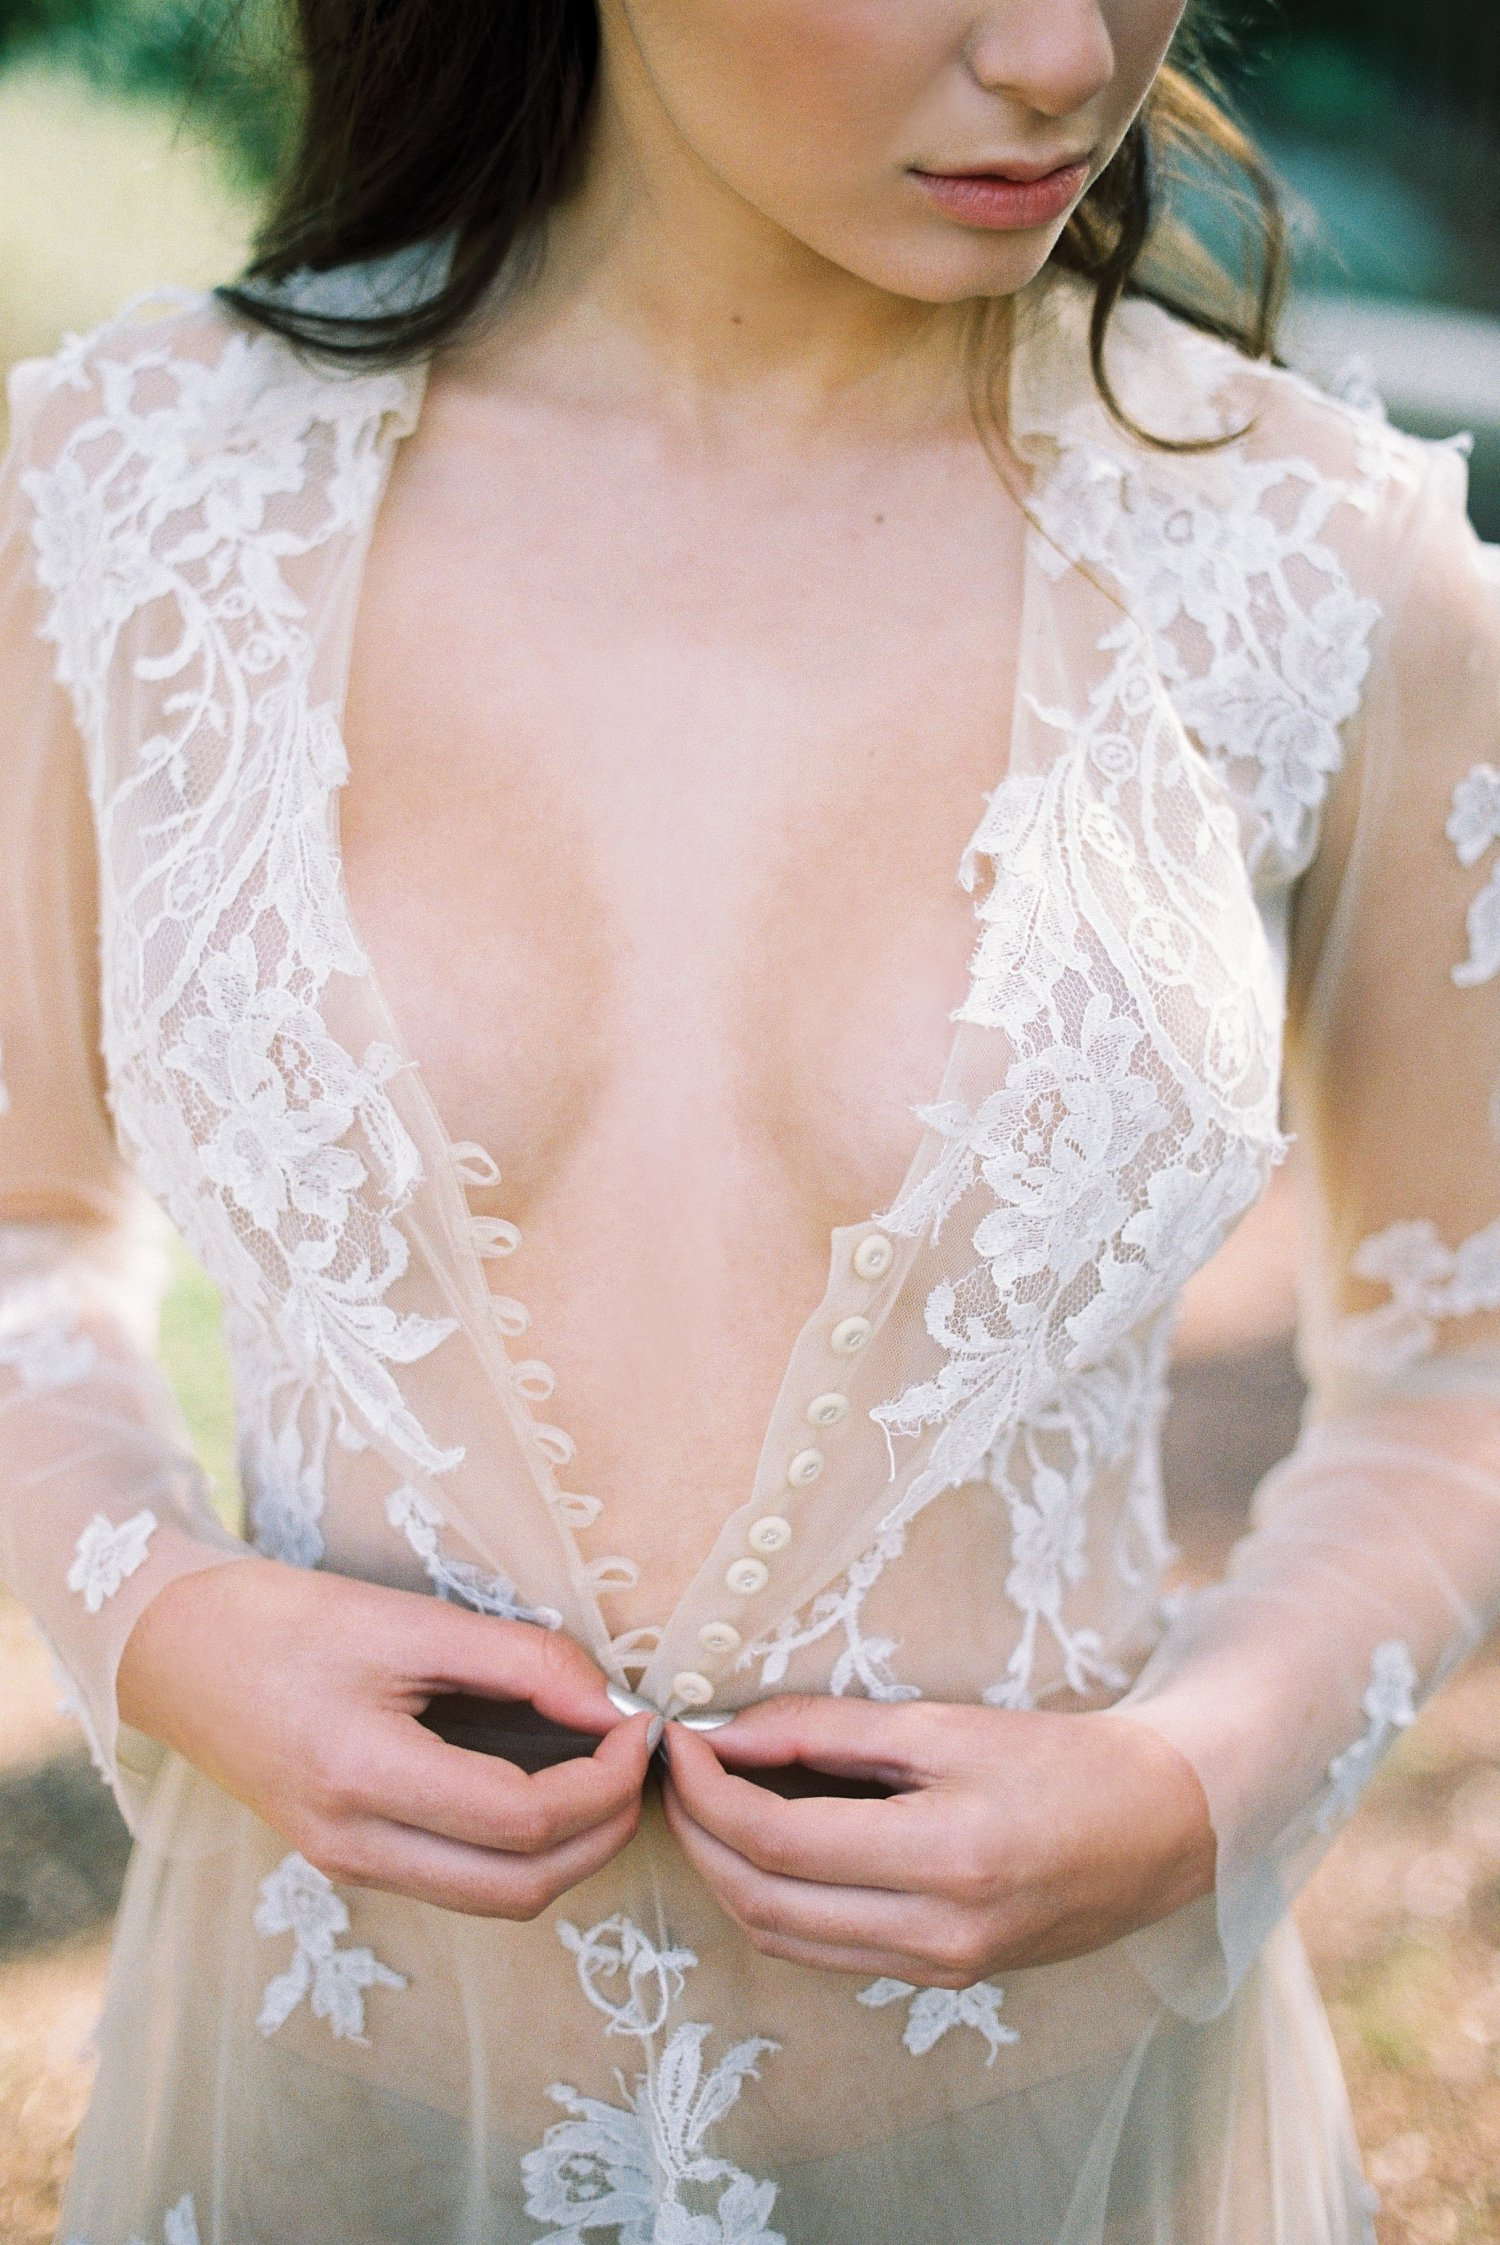 Lace detail on lingerie from Jerusalem bridal boudoir